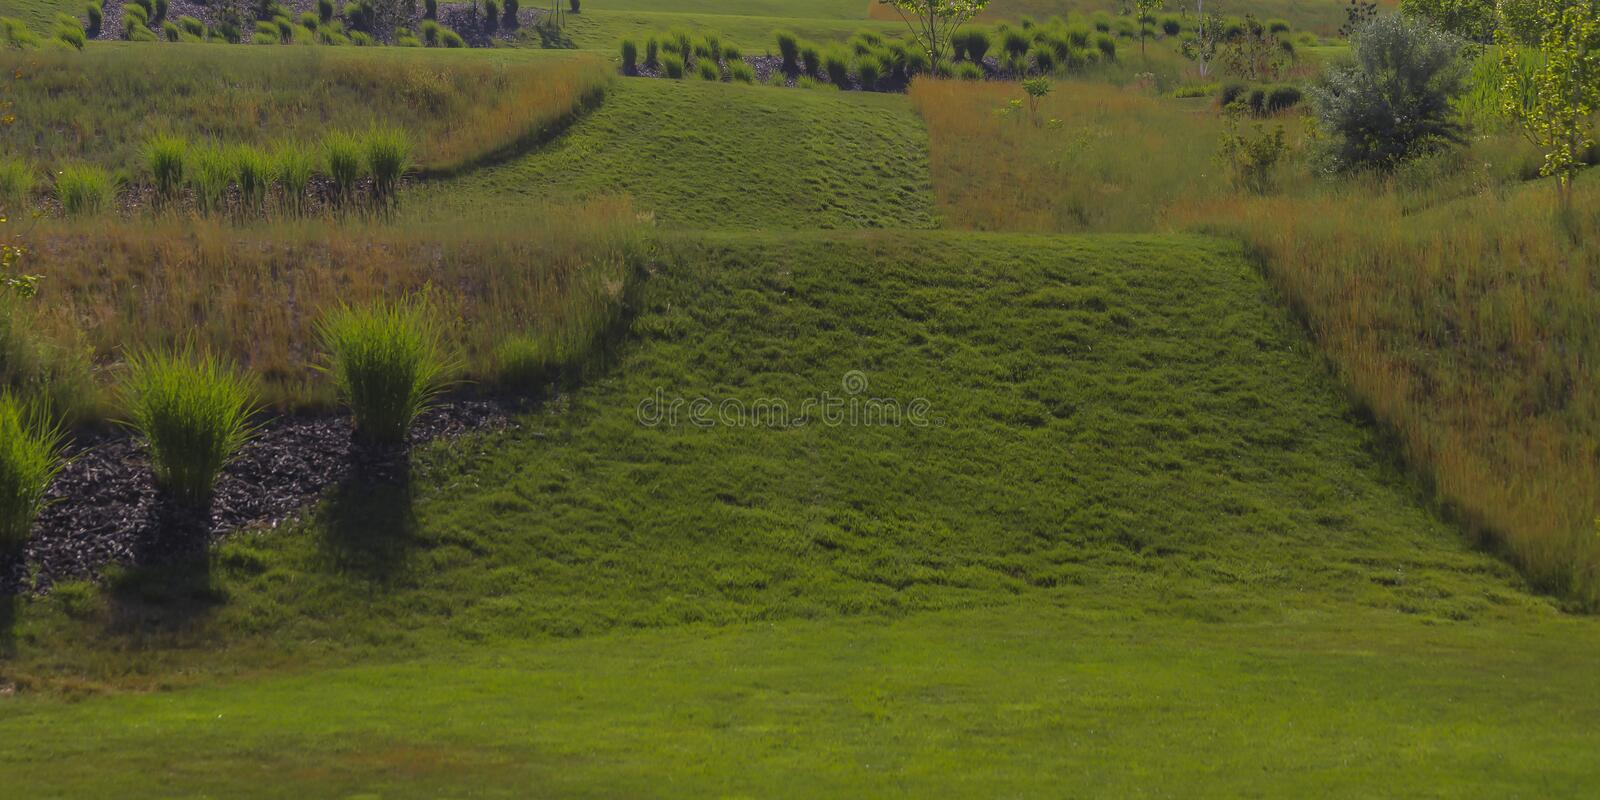 Sloping grassy terrain in Daybreak on a sunny day. View of a sloping grassy terrain in Daybreak, Utah on a bright sunny day. Beautiful manicured lawn with royalty free stock image